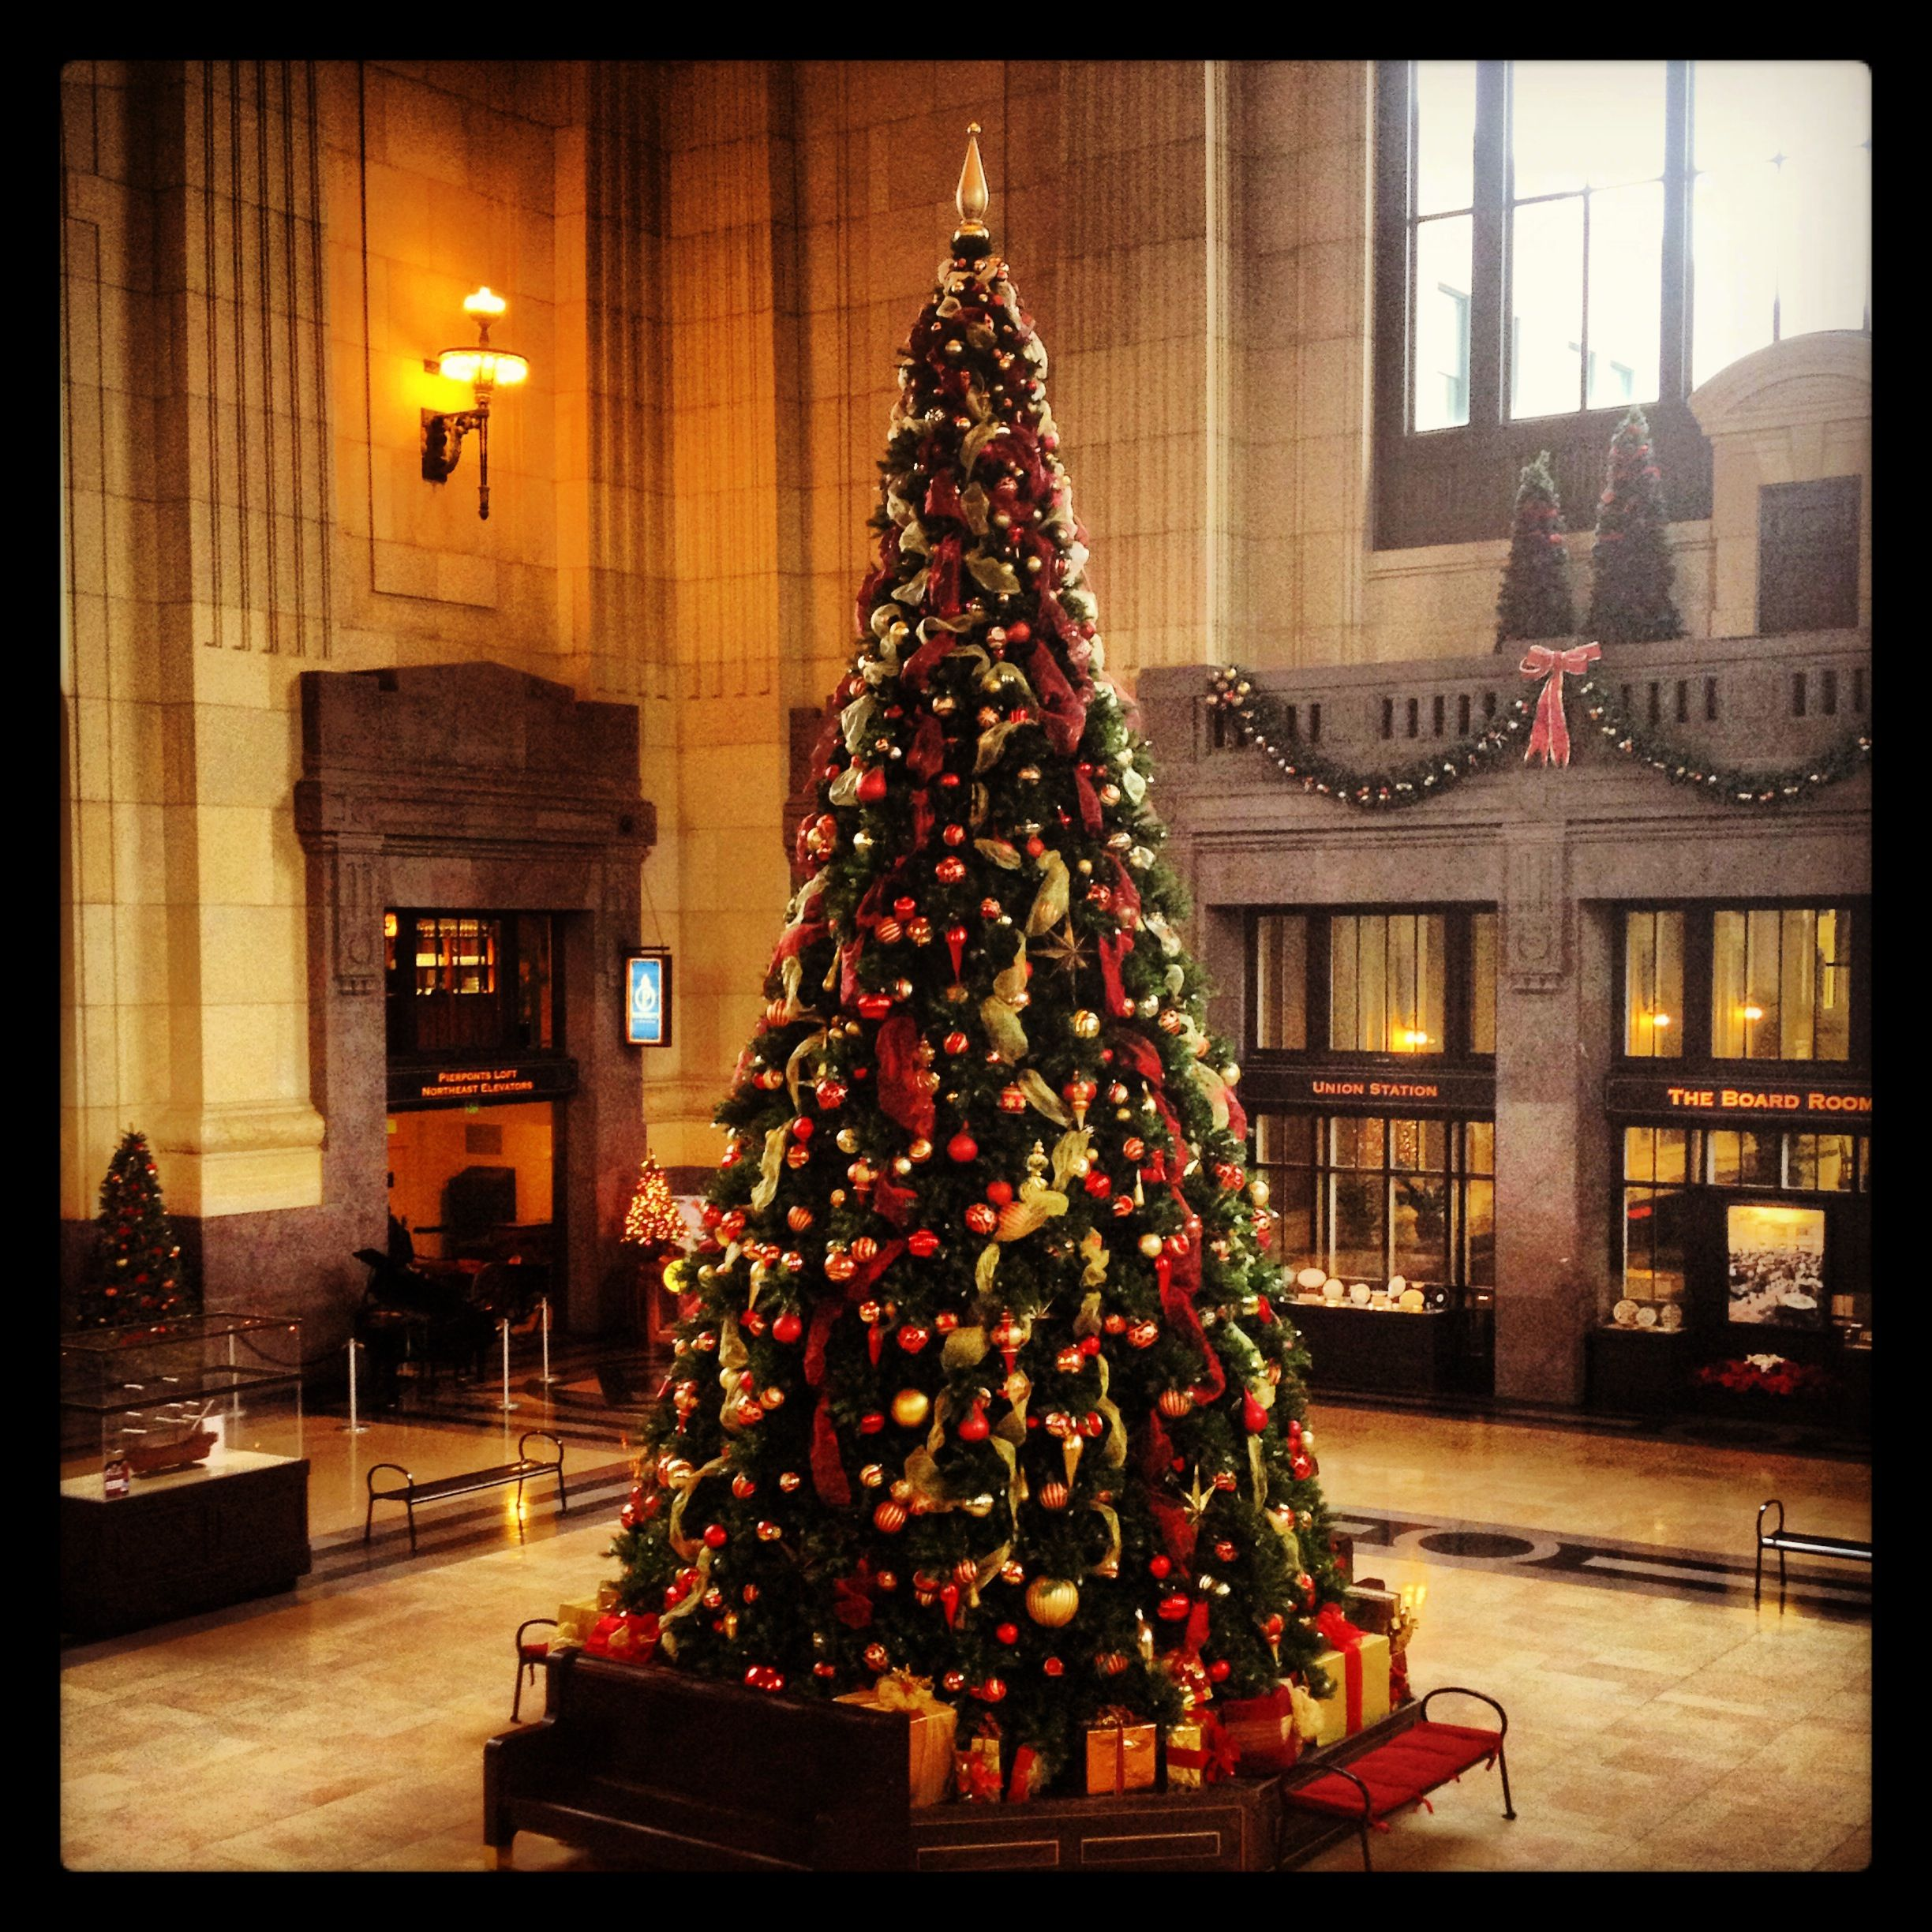 Christmas tree at Union Station in Kansas City (With